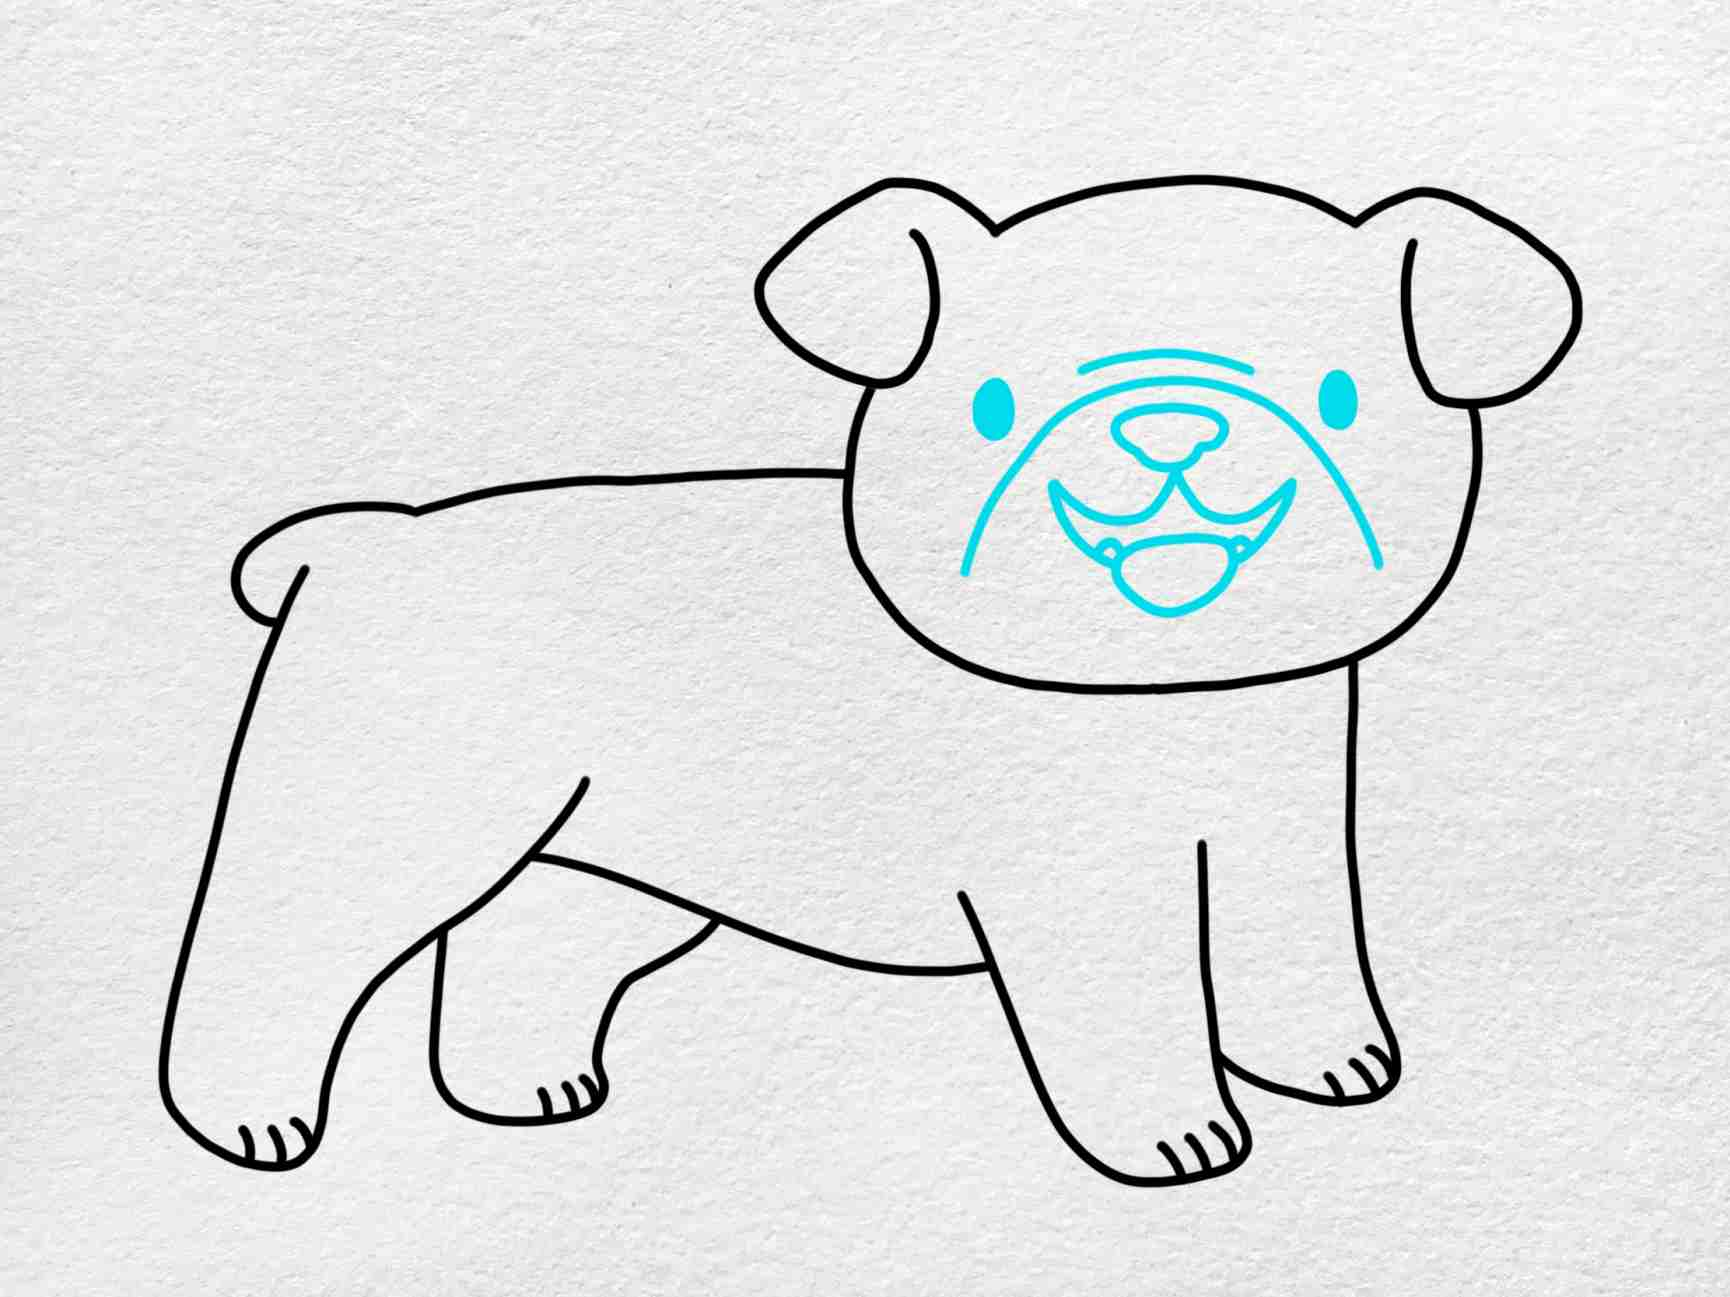 How To Draw A Bulldog: Step 5